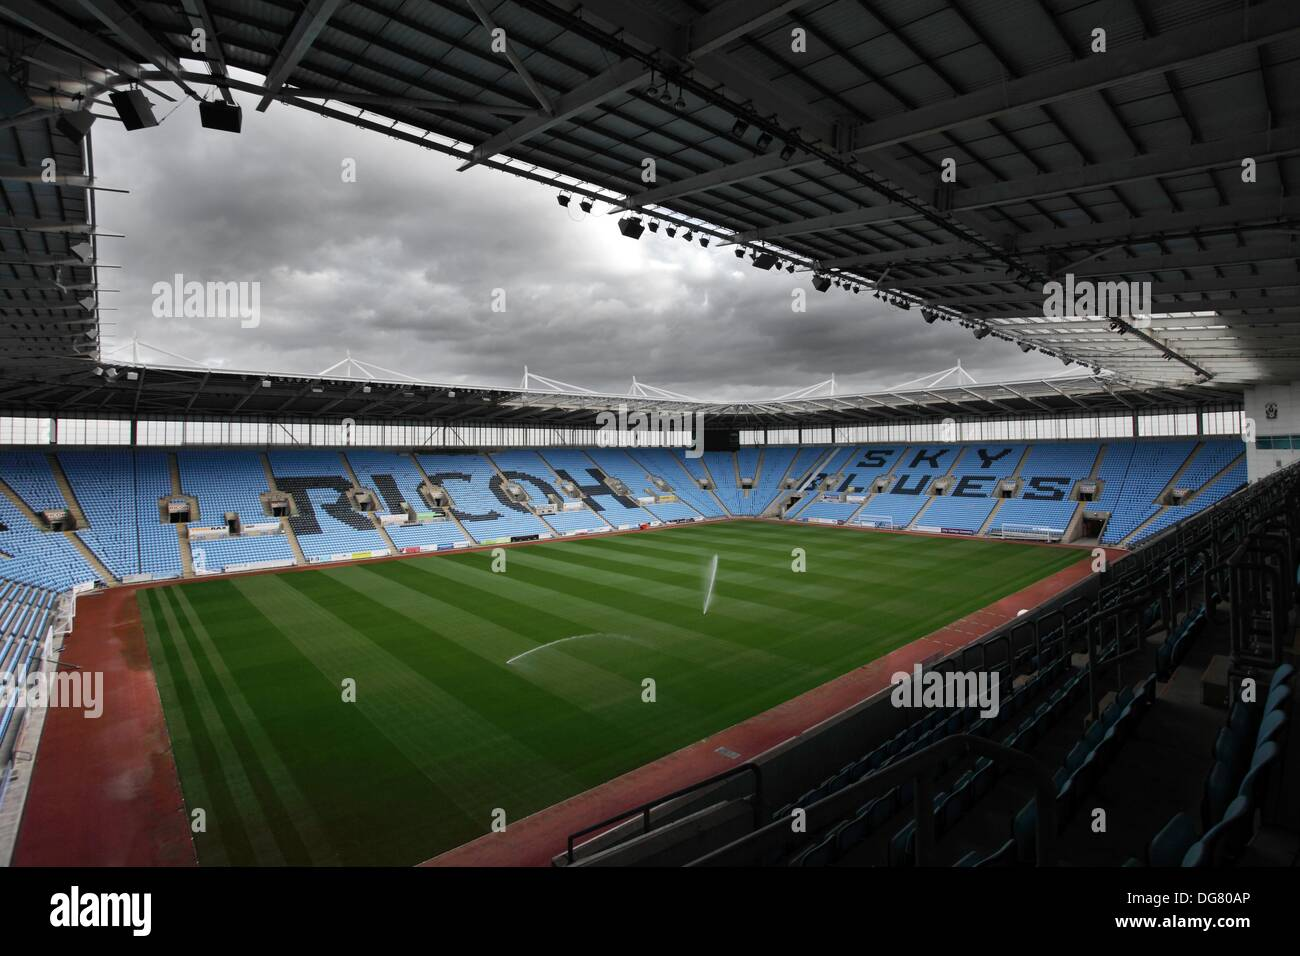 Coventry, UK. 15th October 2013. Untouched turf of the Ricoh Stadium. The only thing playing at the Ricoh Stadium in Coventry are the water sprinklers on the pitch, with Coventry City FC being forced to play in Northampton due to financial difficulties. © Tony Charnock/Alamy Live News - Stock Image